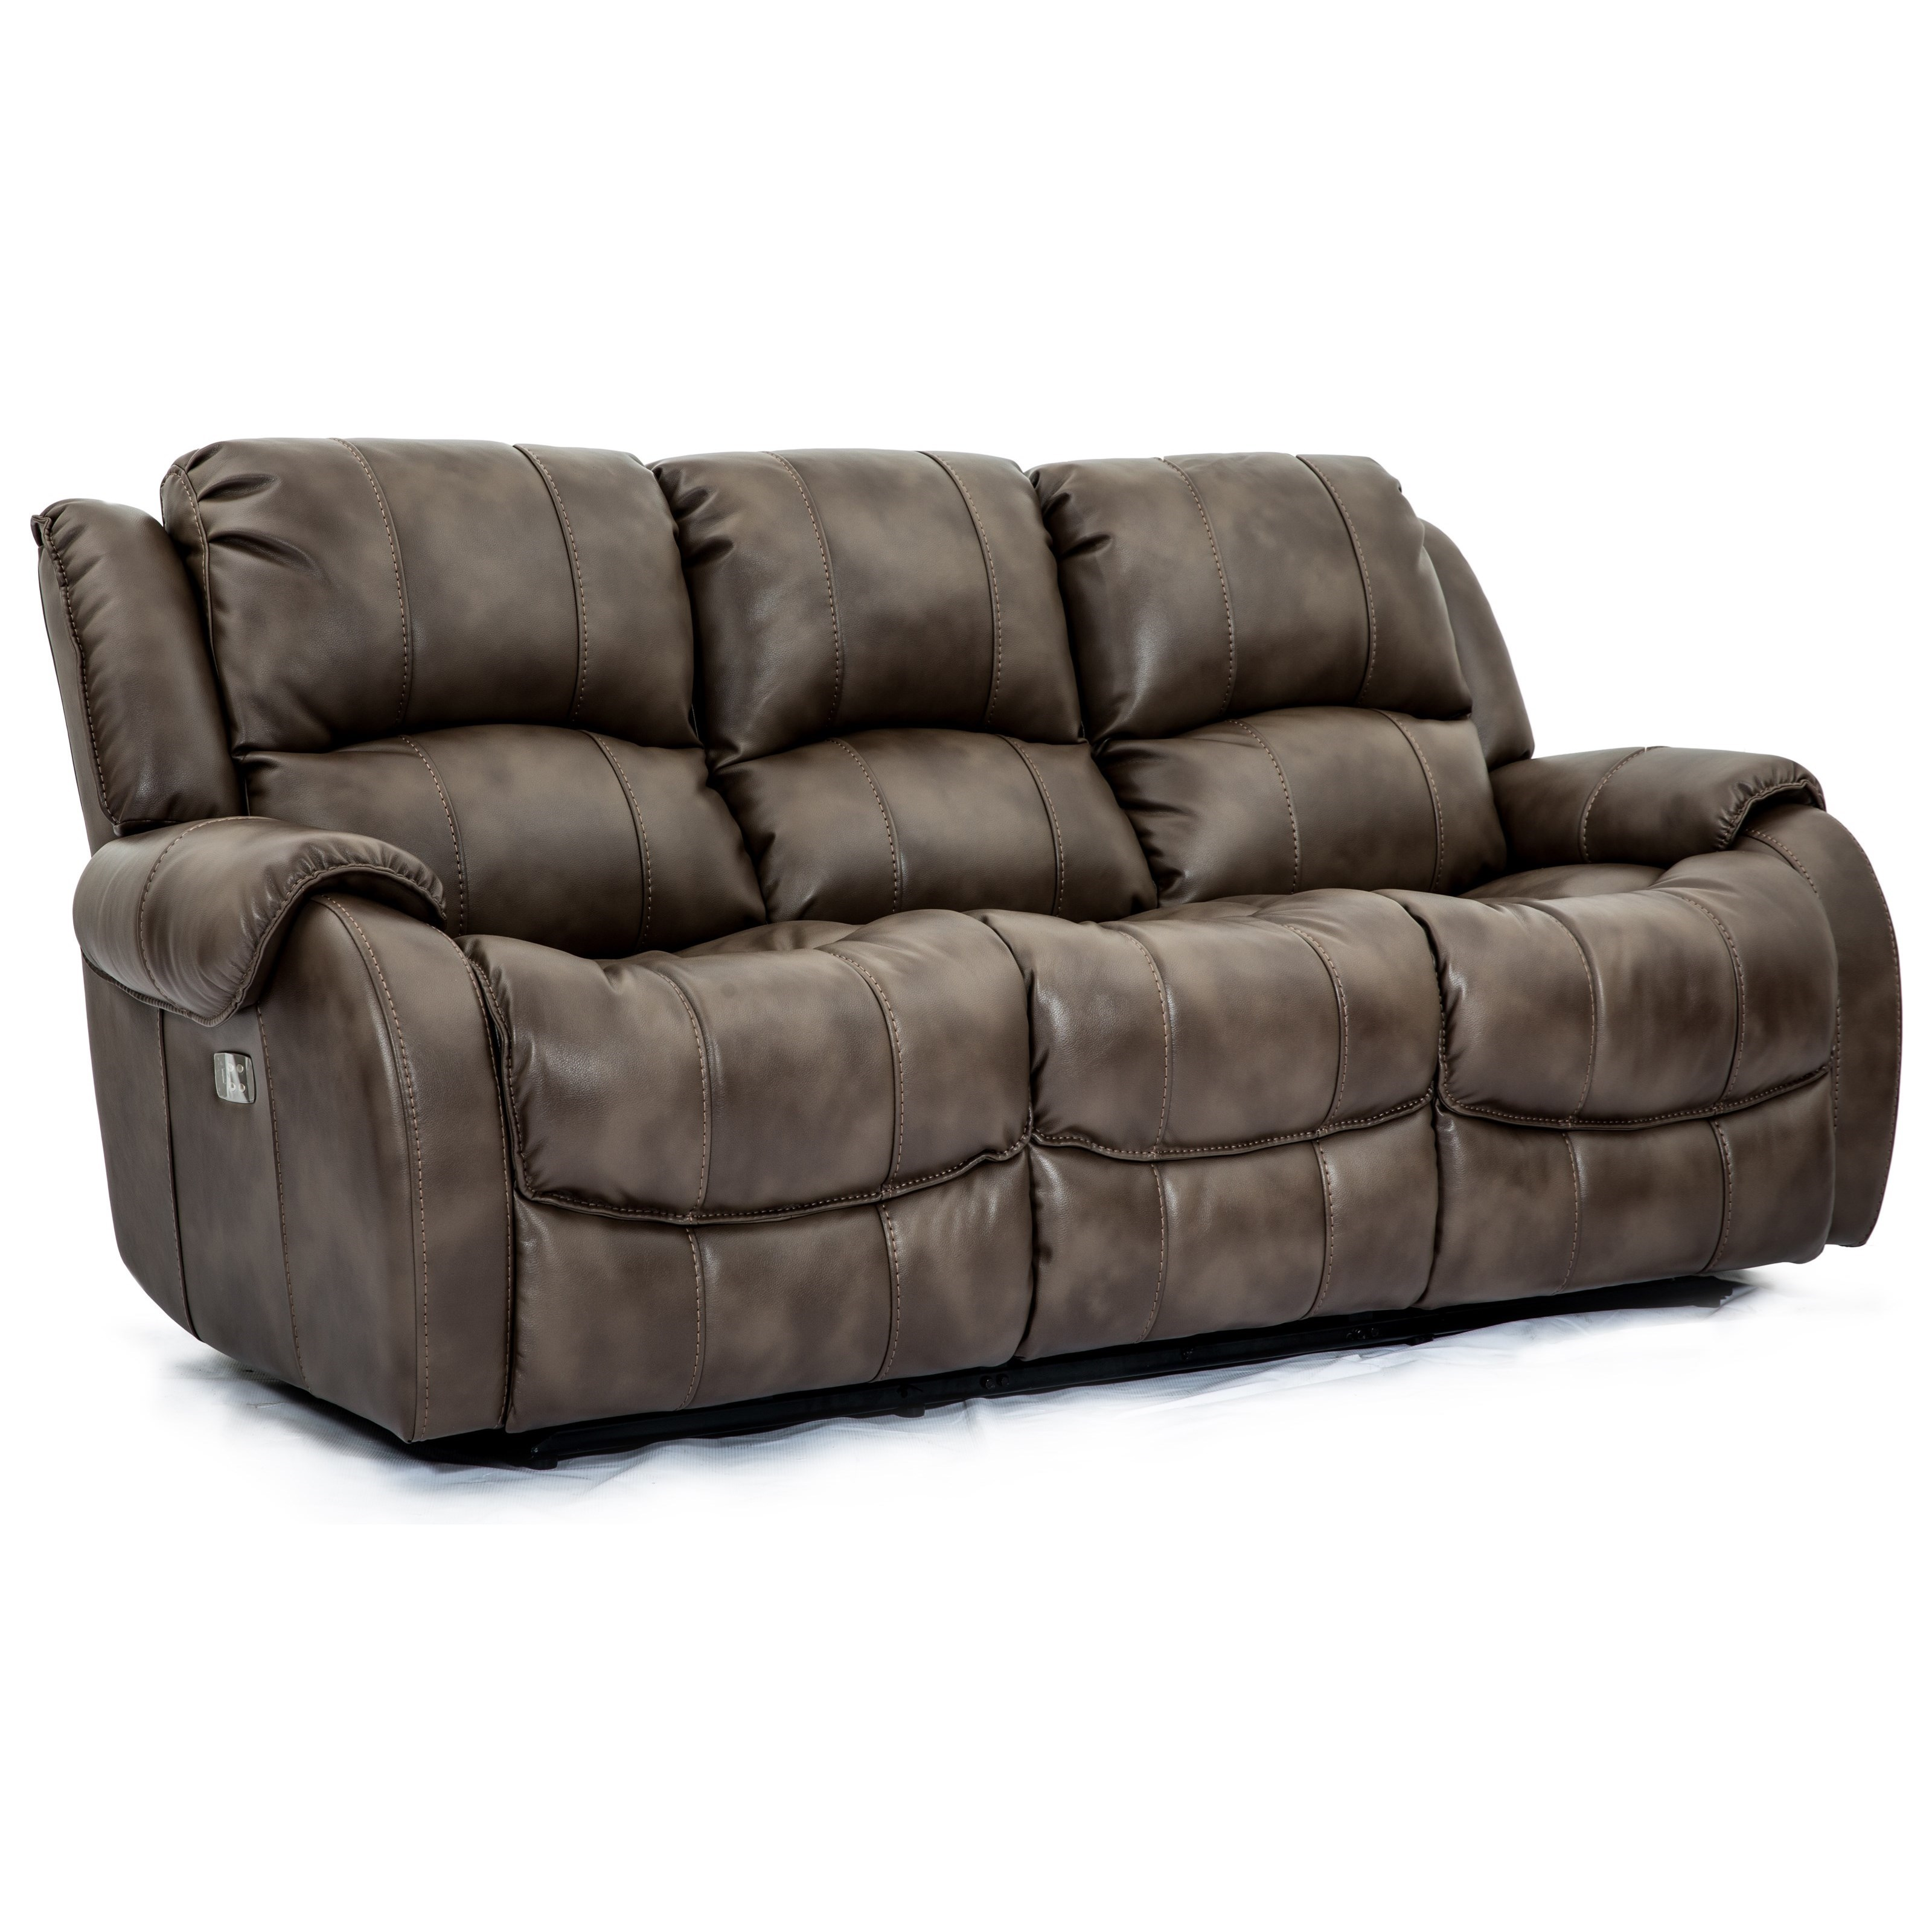 5171 Power Sofa with Power Headrest by Cheers Sofa at Lagniappe Home Store